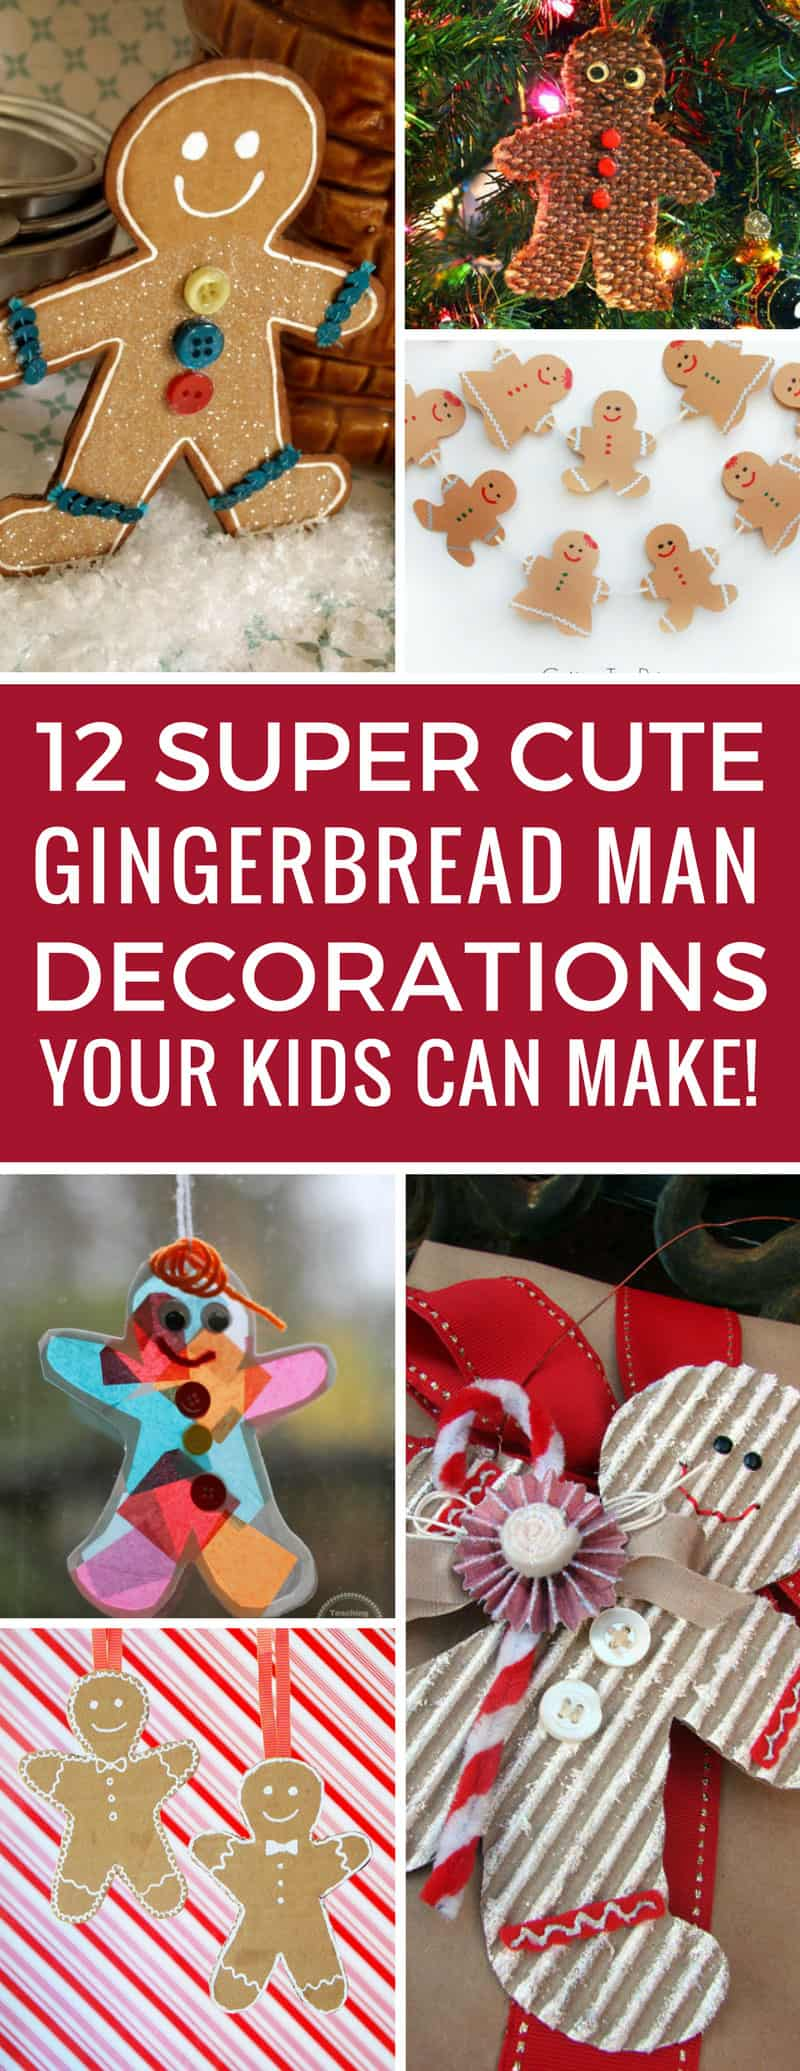 Aww how cute are these gingerbread man decorations! The kids are going to have so much fun making these Christmas ornaments! Thanks for sharing!